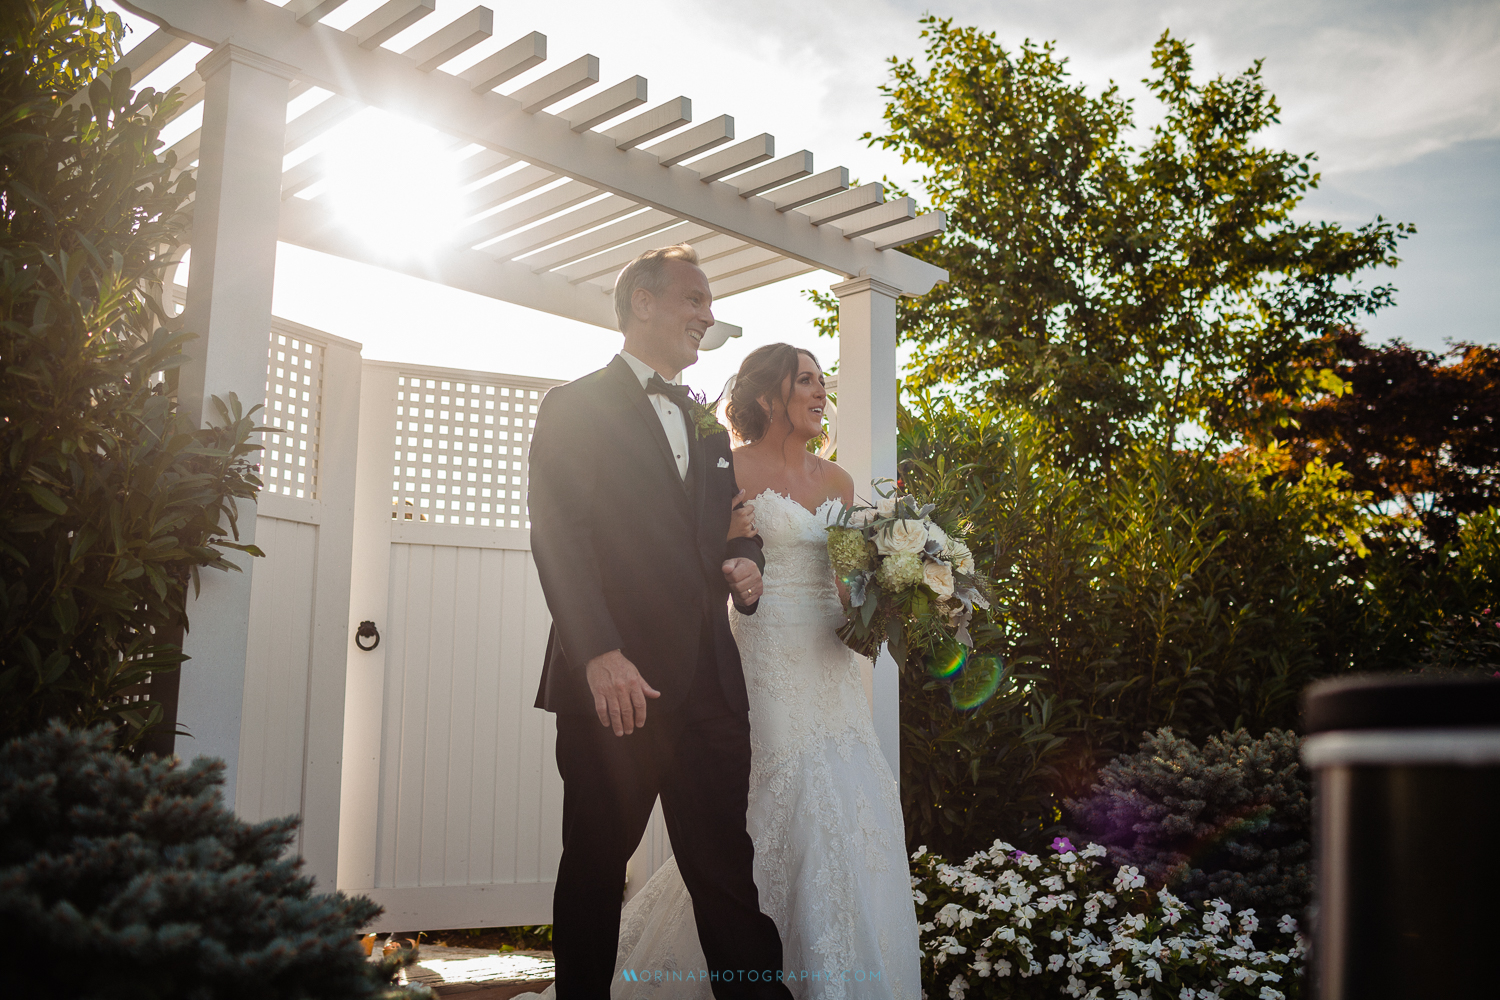 Amanda & Austin wedding at Crystal Point Yacht Club 68.jpg